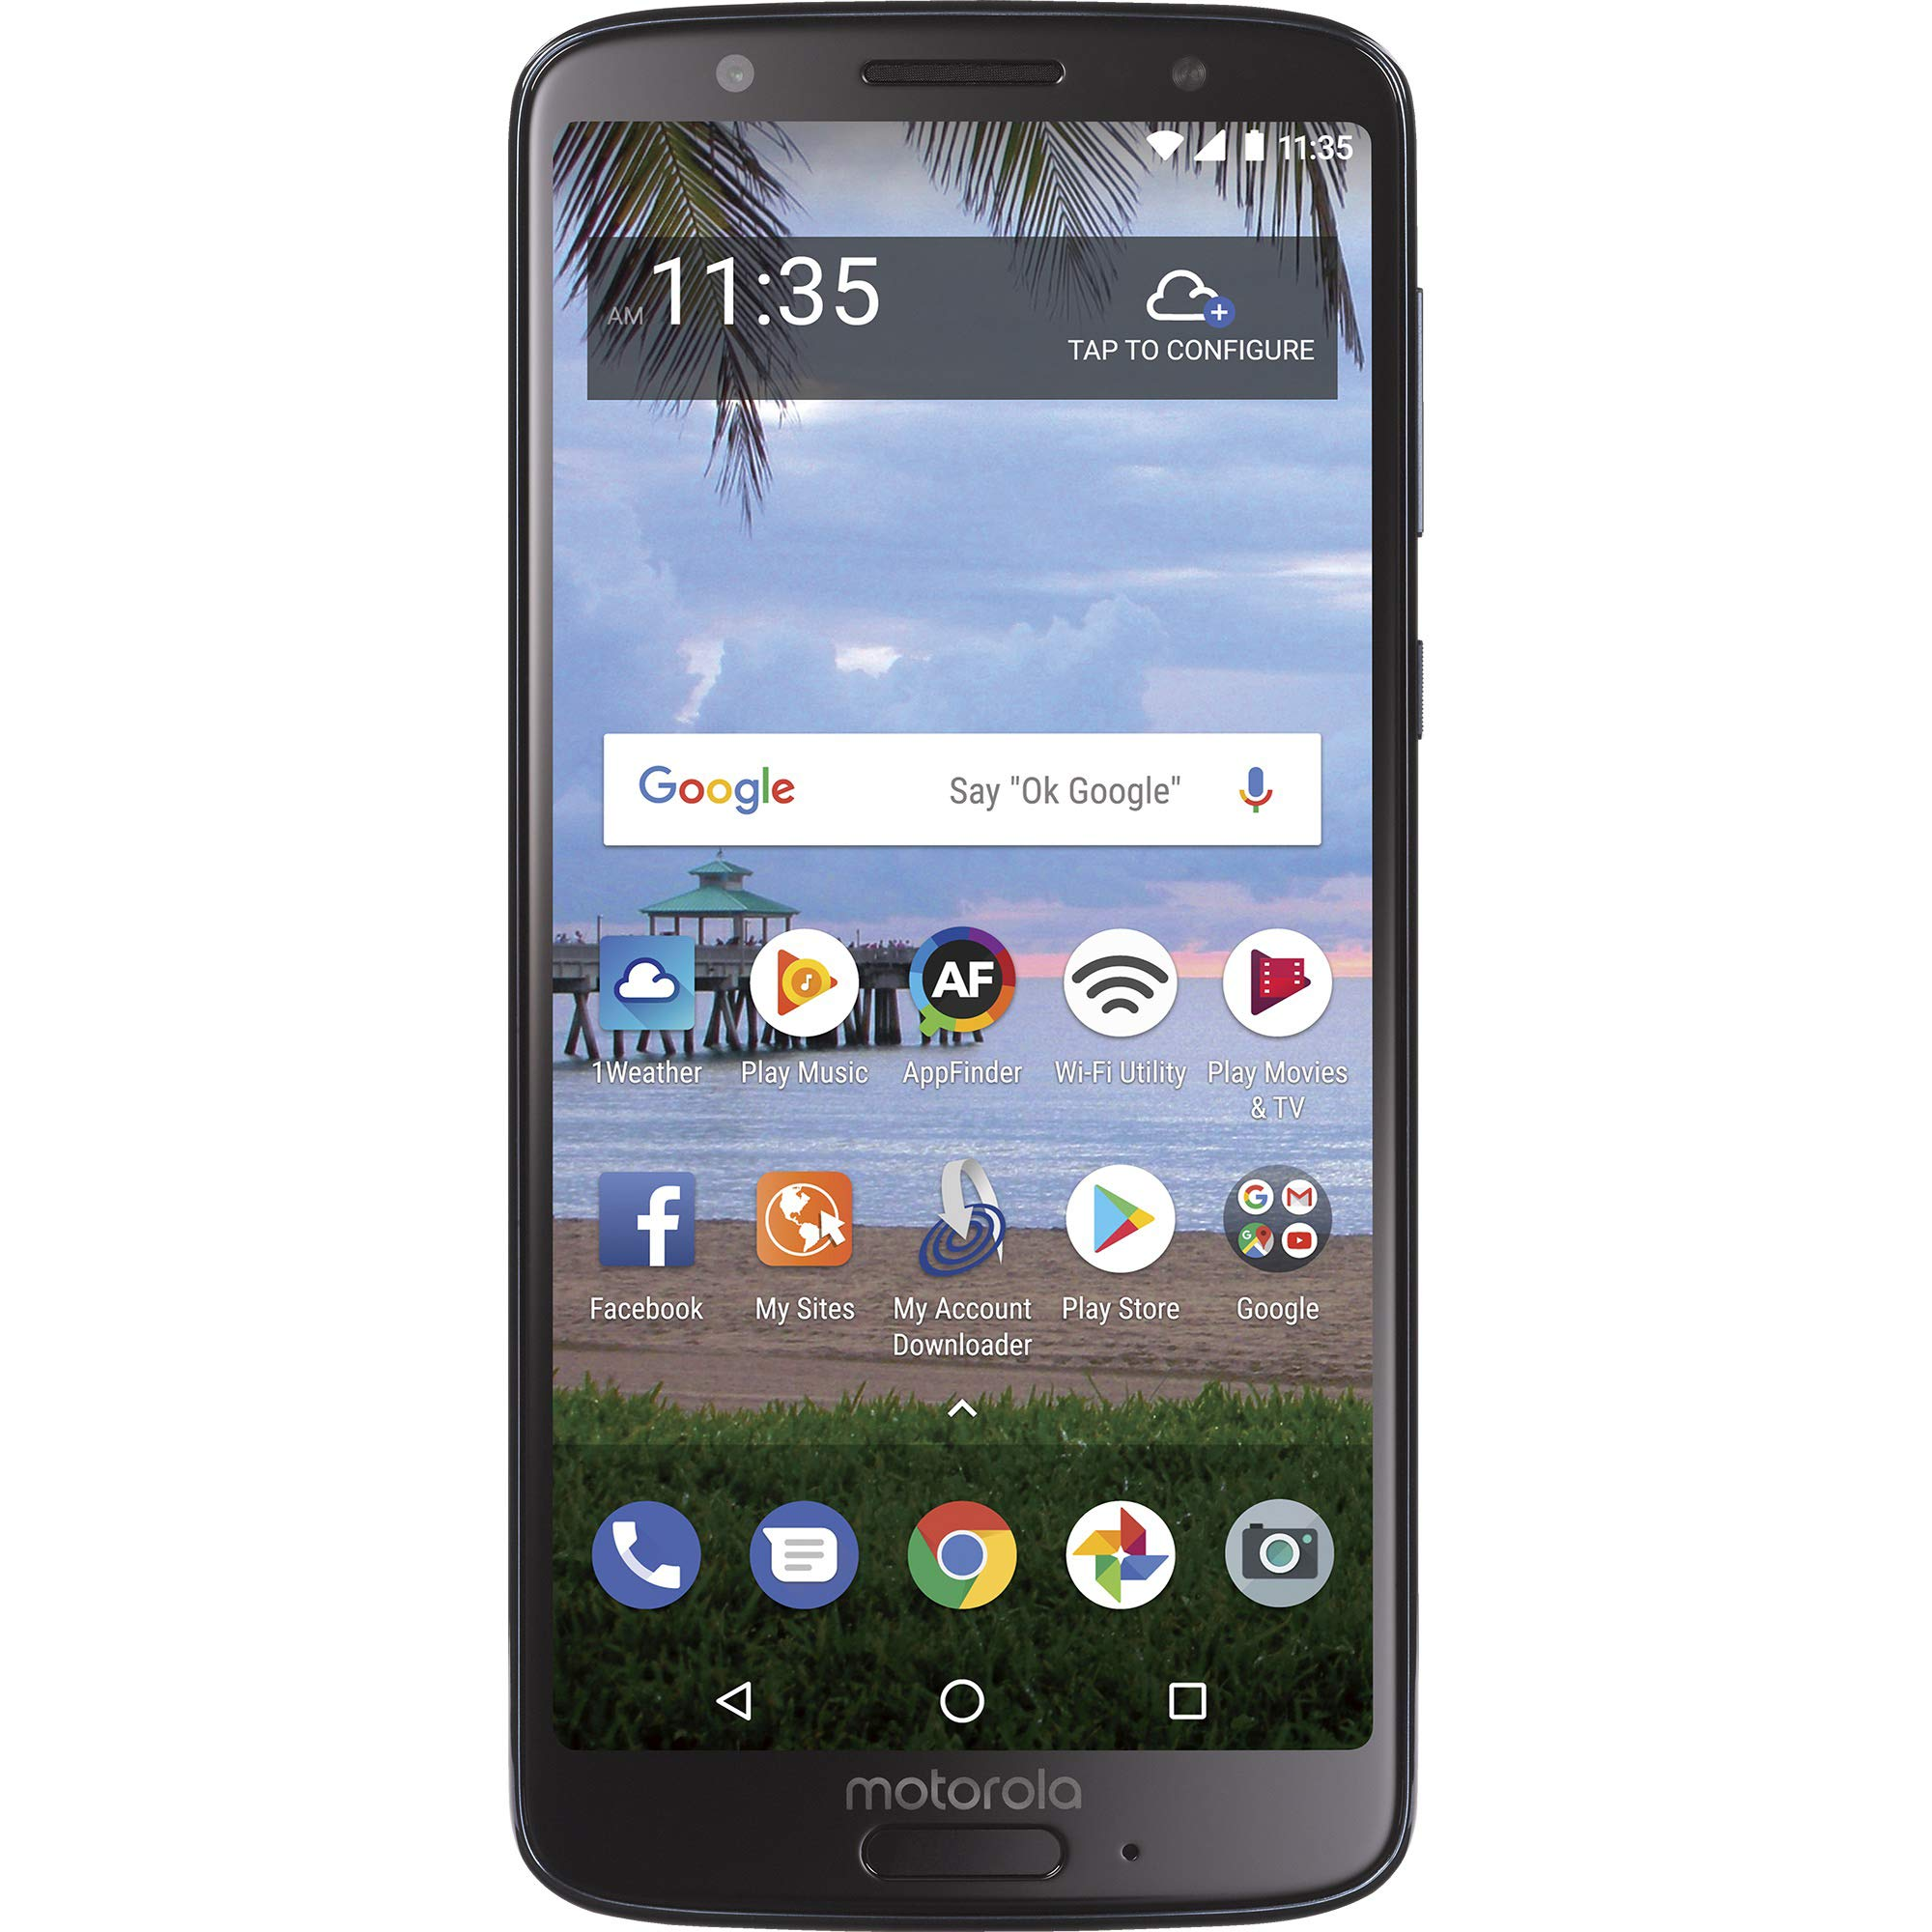 TracFone Motorola Moto G6 4G LTE Prepaid Smartphone with Amazon Exclusive $40 Airtime Bundle by TracFone